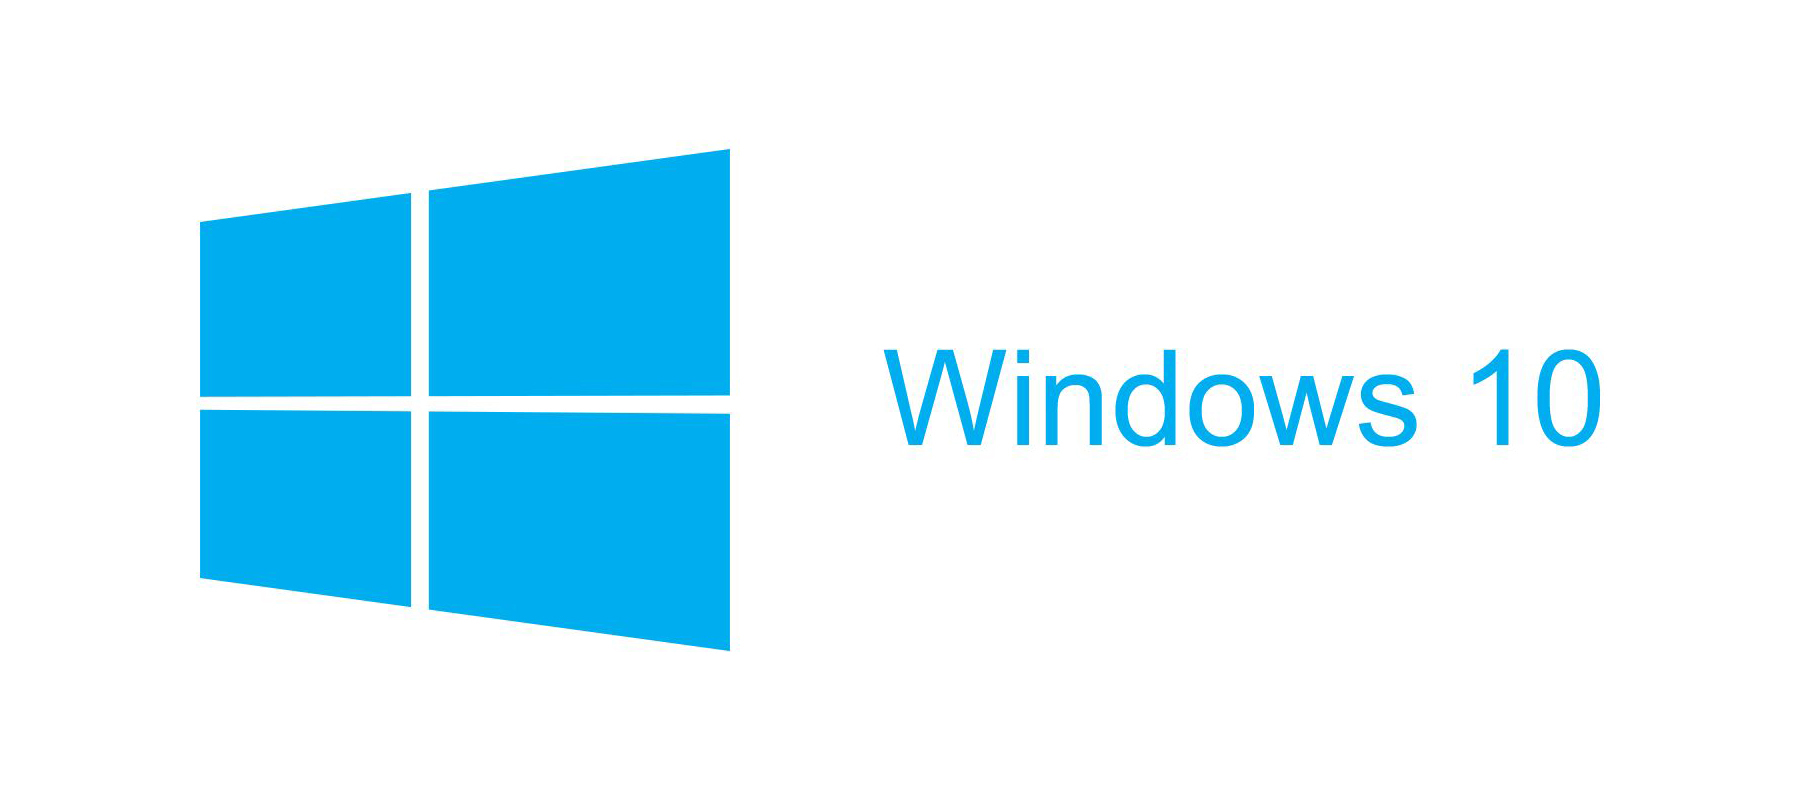 Windows 10 pro legal f r 35 euro kaufen so gehts for Window 10 pro